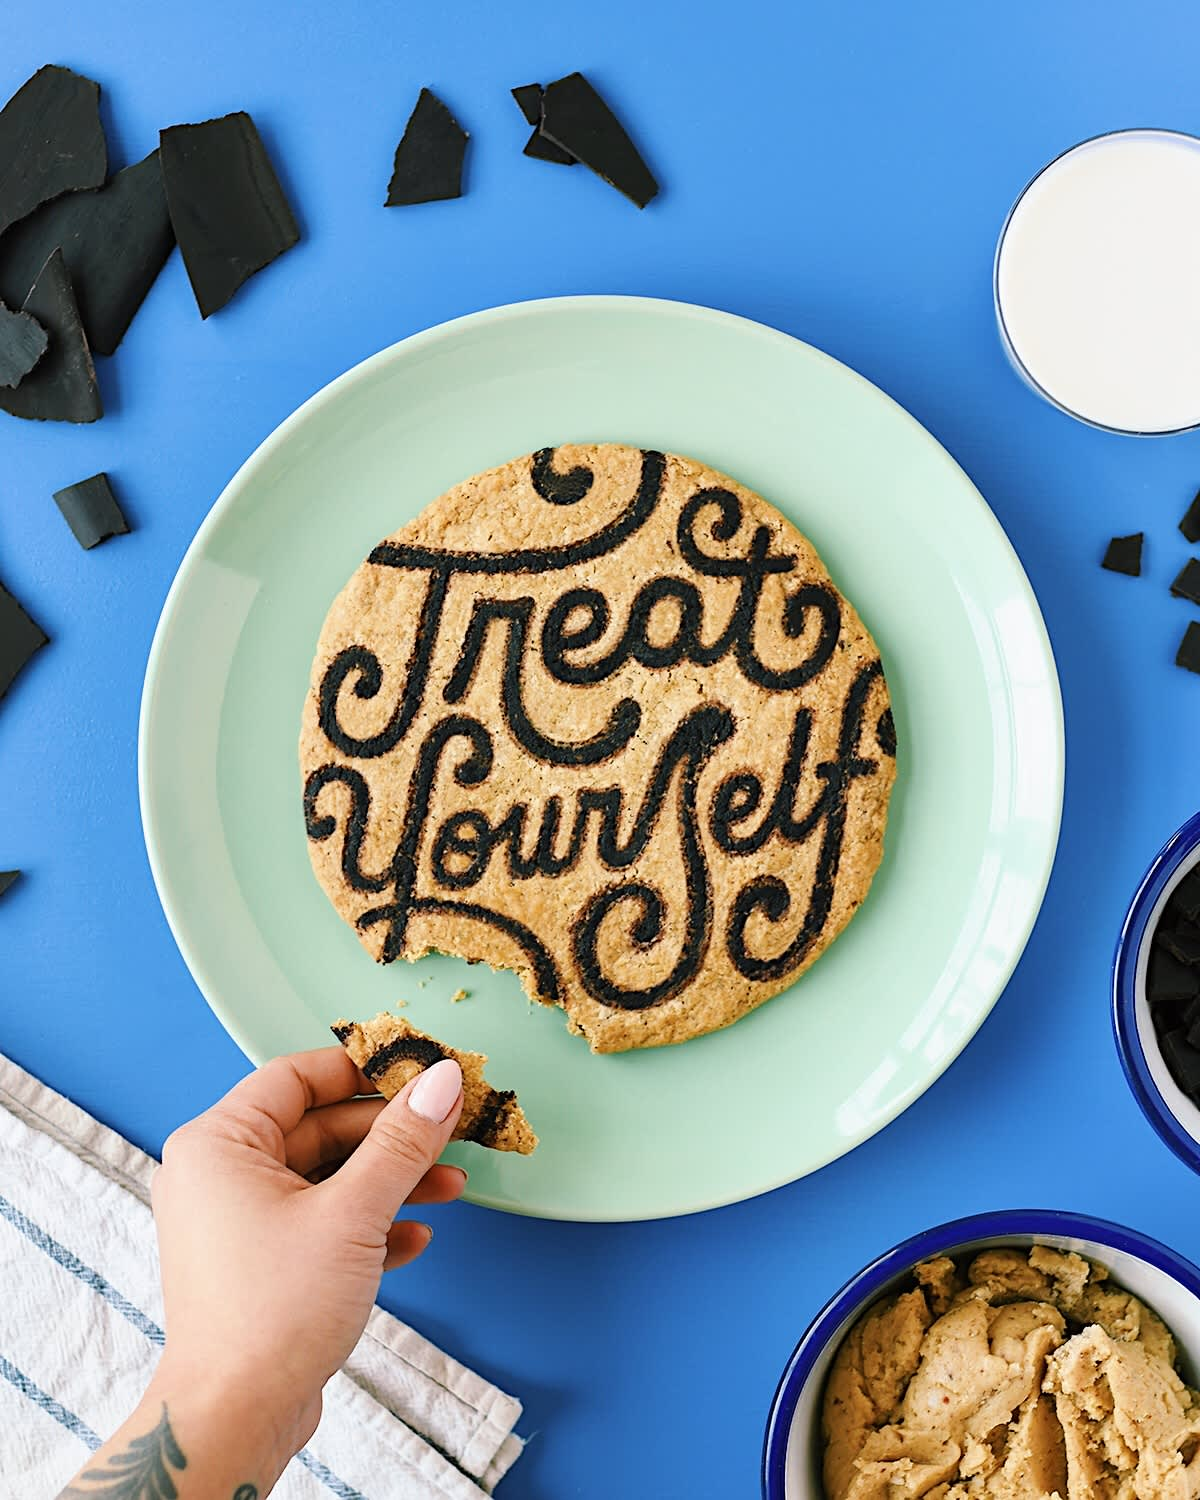 Treat Yourself Cookie Experiment